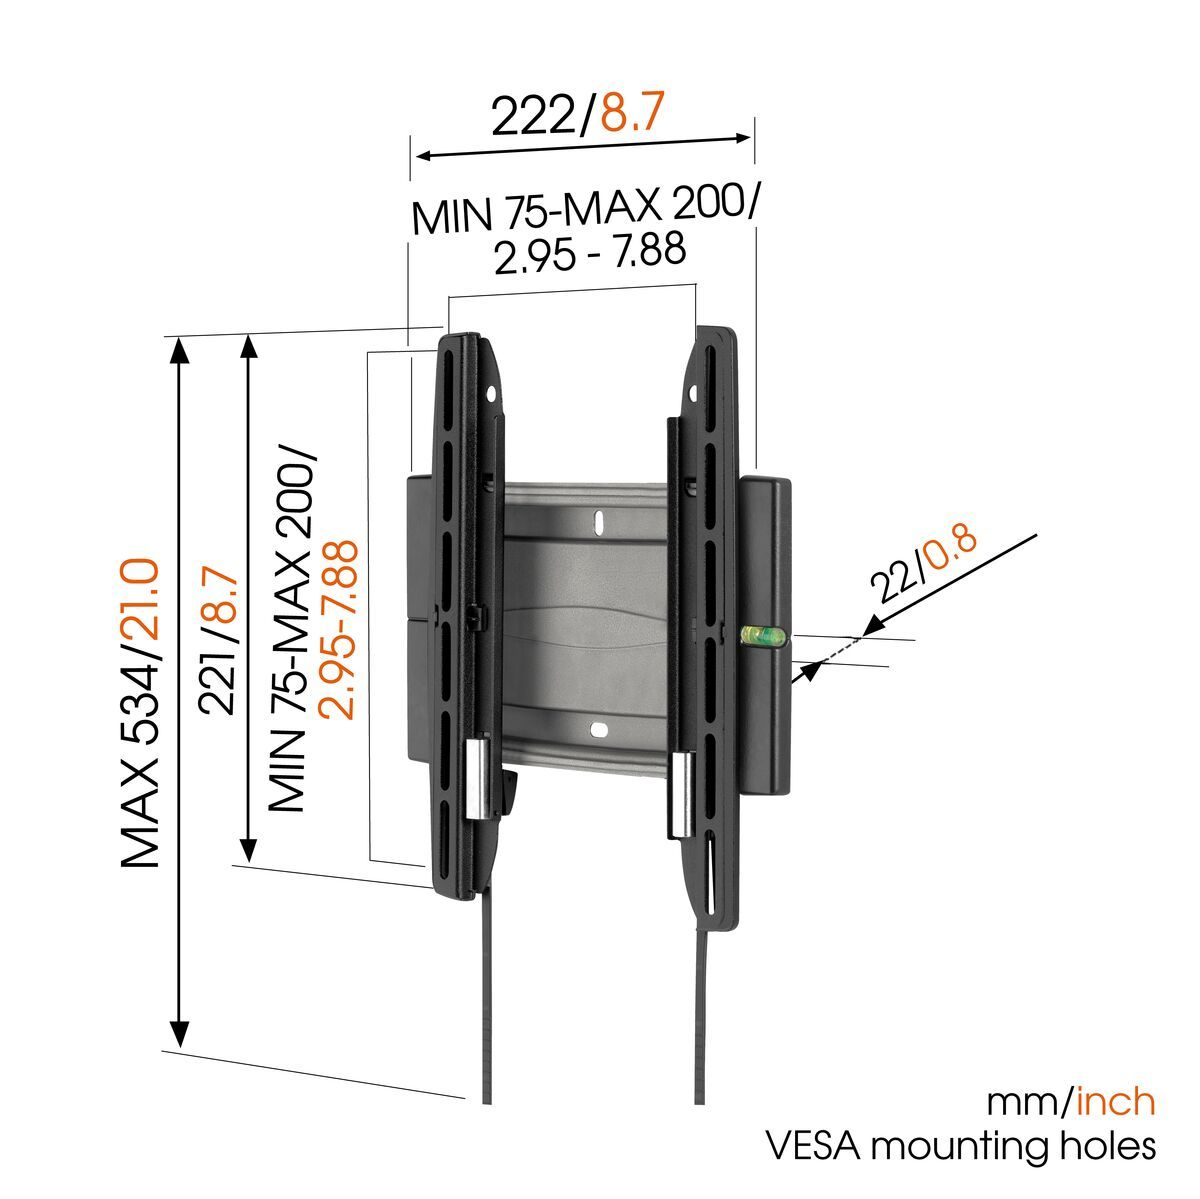 Vogel's EFW 8105 Fixed TV Wall Mount - Suitable for 19 up to 40 inch TVs up to 20 kg - Dimensions